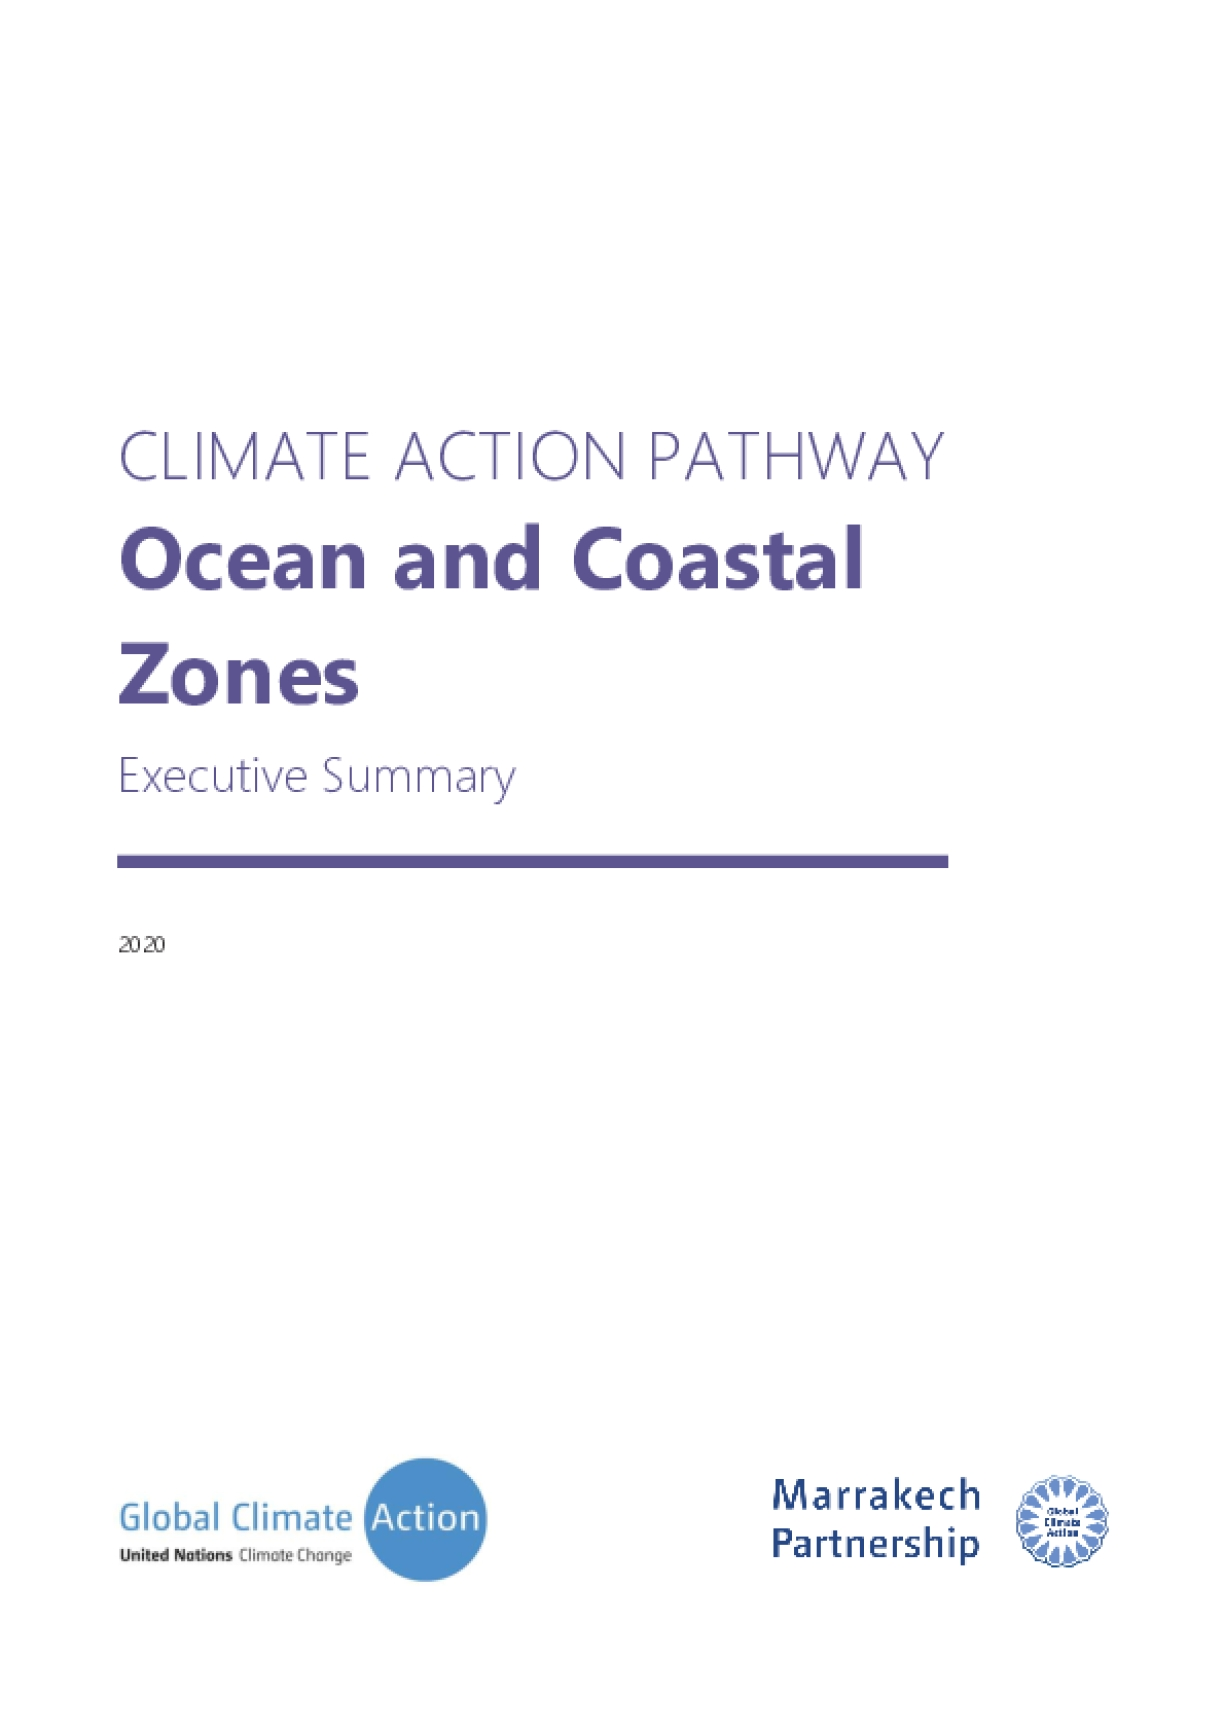 CLIMATE ACTION PATHWAY: Ocean and Coastal Zones